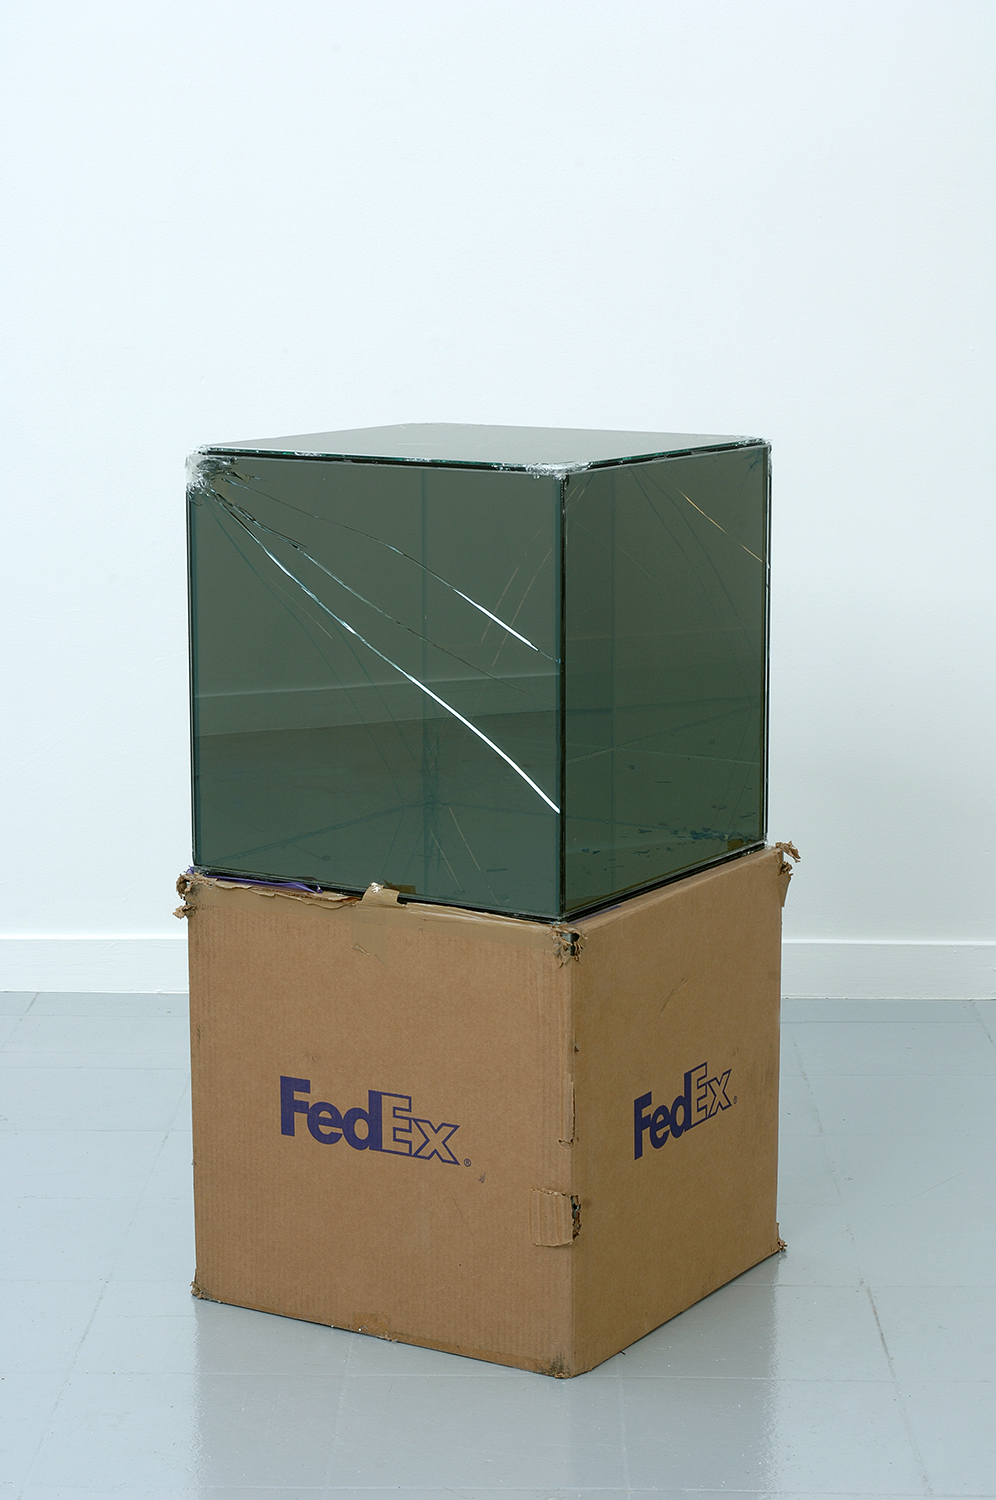 FedEx Large Kraft Box 2005 FEDEX 330508 REV 10/05 SSCC, International Priority, Los Angeles–Brussels trk#865282057953, October 27–30, 2008, International Priority, Brussels–Los Angeles trk#866071746385, December 8–9, 2008    2008–   Laminated mirropane, FedEx shipping box, accrued FedEx shipping and tracking labels, silicone, metal, and tape  20 x 20 x 20 inches   FedEx Glass Works, 2007–